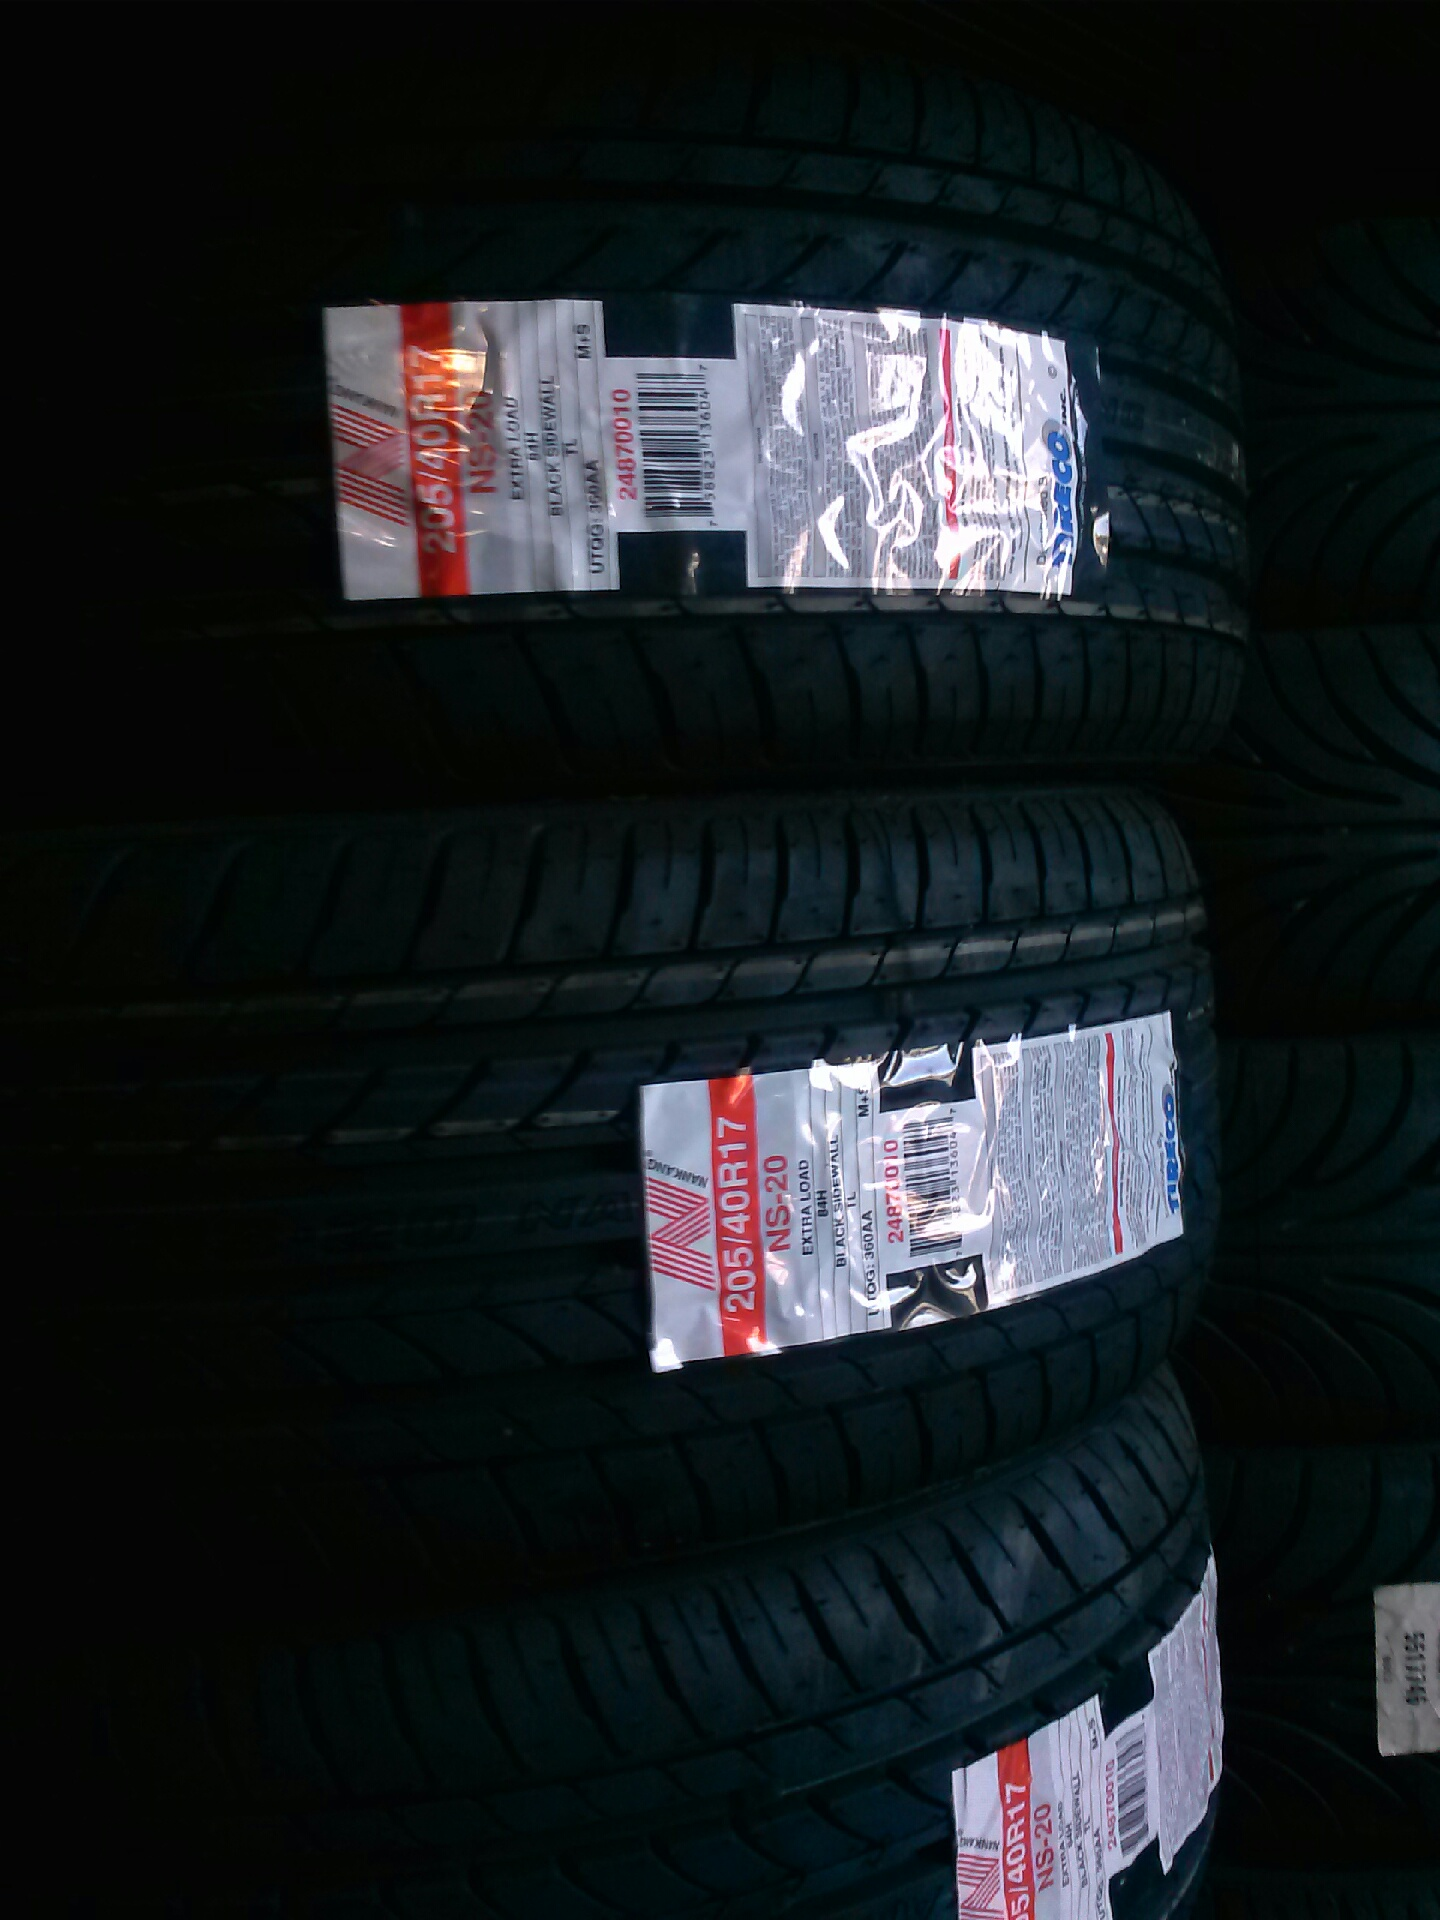 20540R17 Nankang tires on sale for 69 each We offer financing for 3 and 6 months no interest